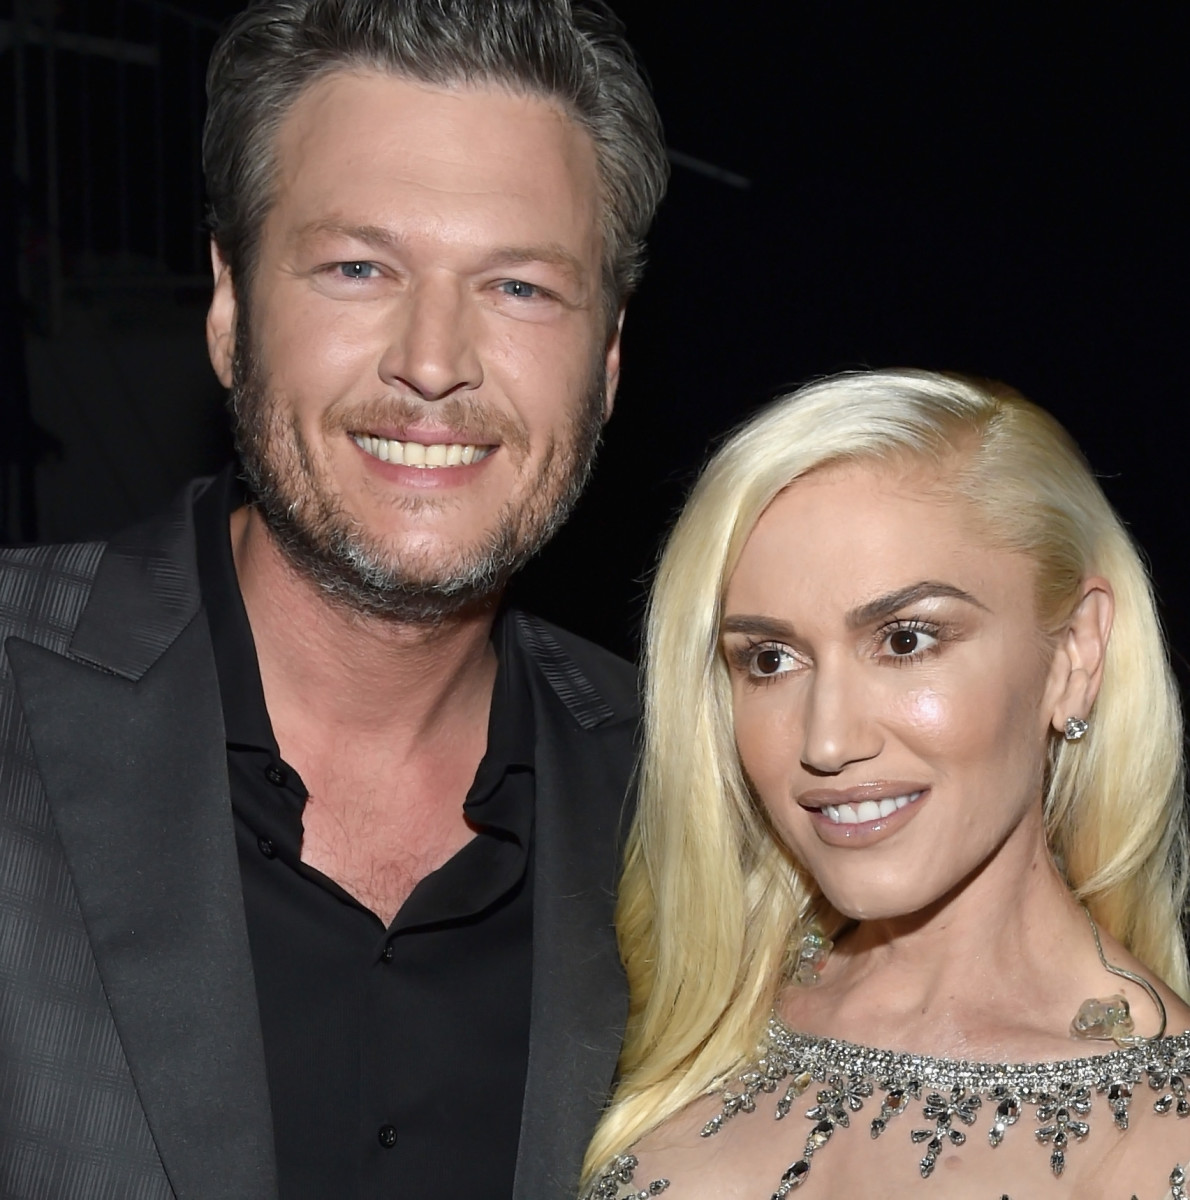 Gwen Stefani makeup at the 2016 Billboard Music Awards with Blake Shelton